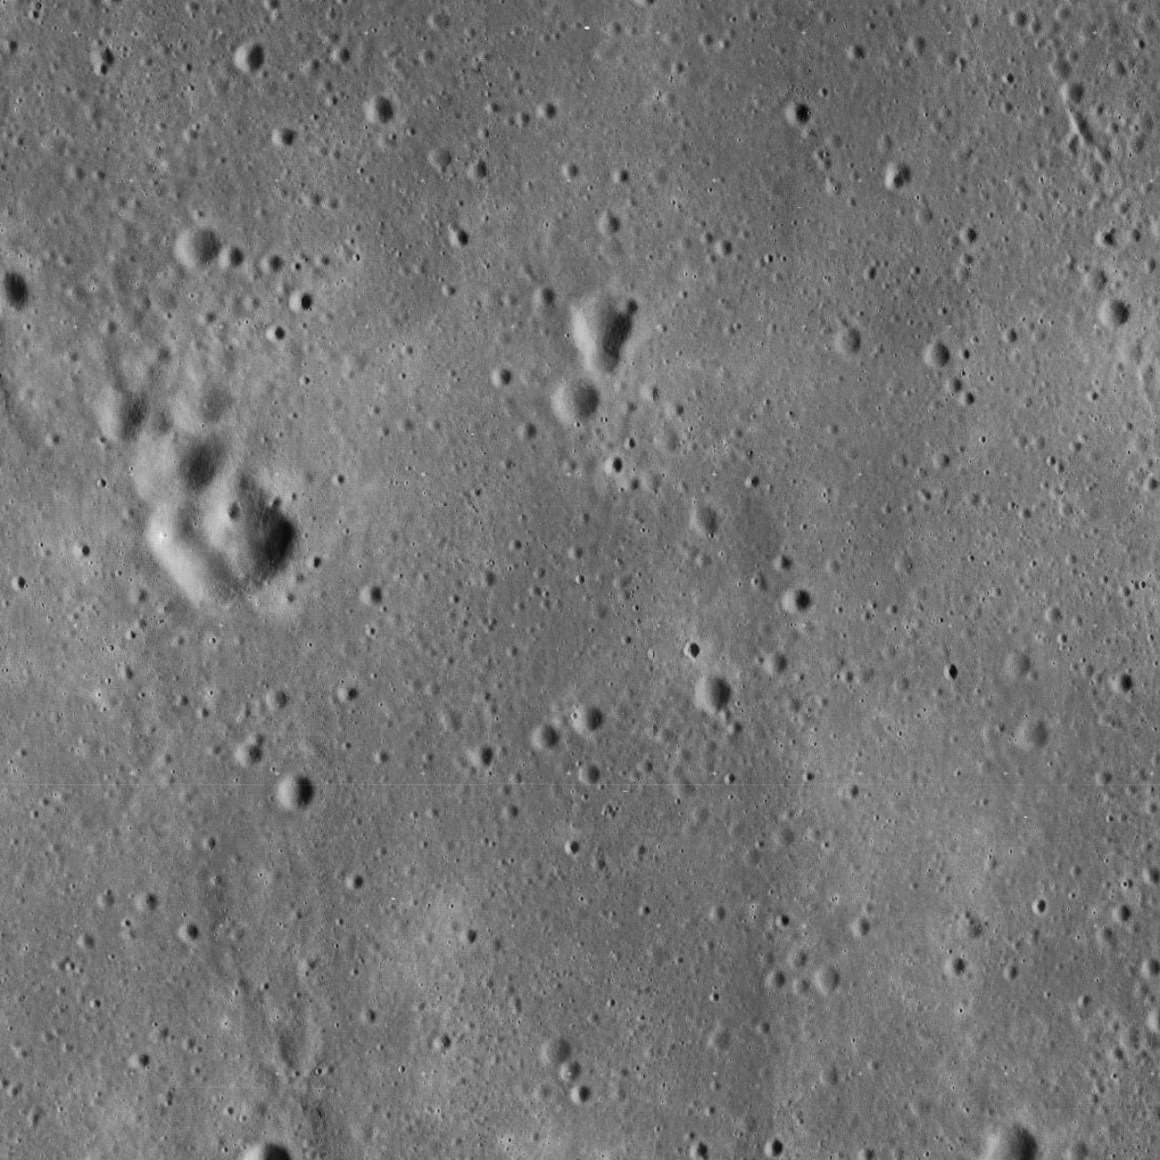 The vicinity of the landing site of the Apollo 11 mission in 1969. This image was captured by the Lunar Orbiter 5 mission in 1967. Credit: James Stuby/Wikimedia Commons